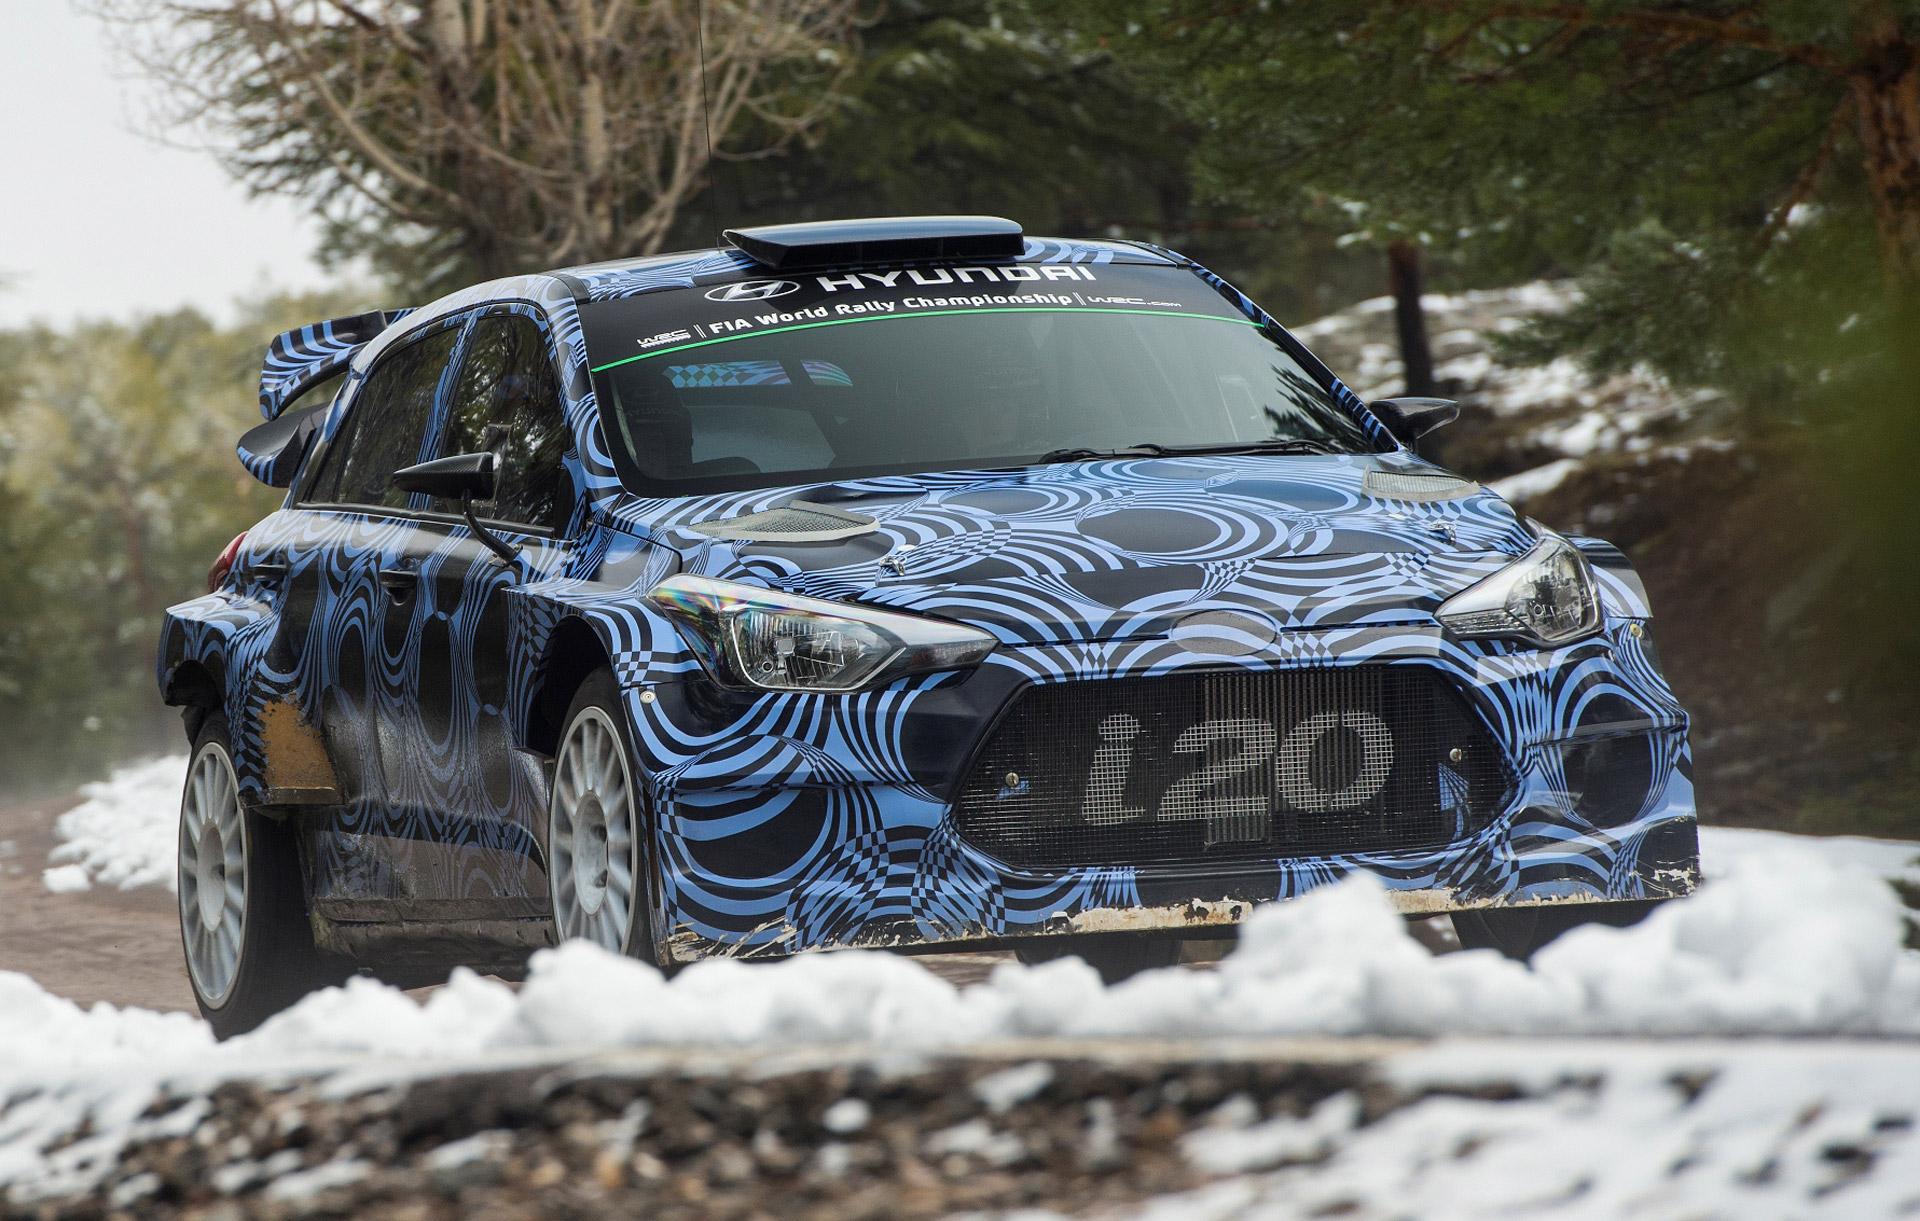 2016 Hyundai i20 WRC Images - 2016 Cars Release Date Price